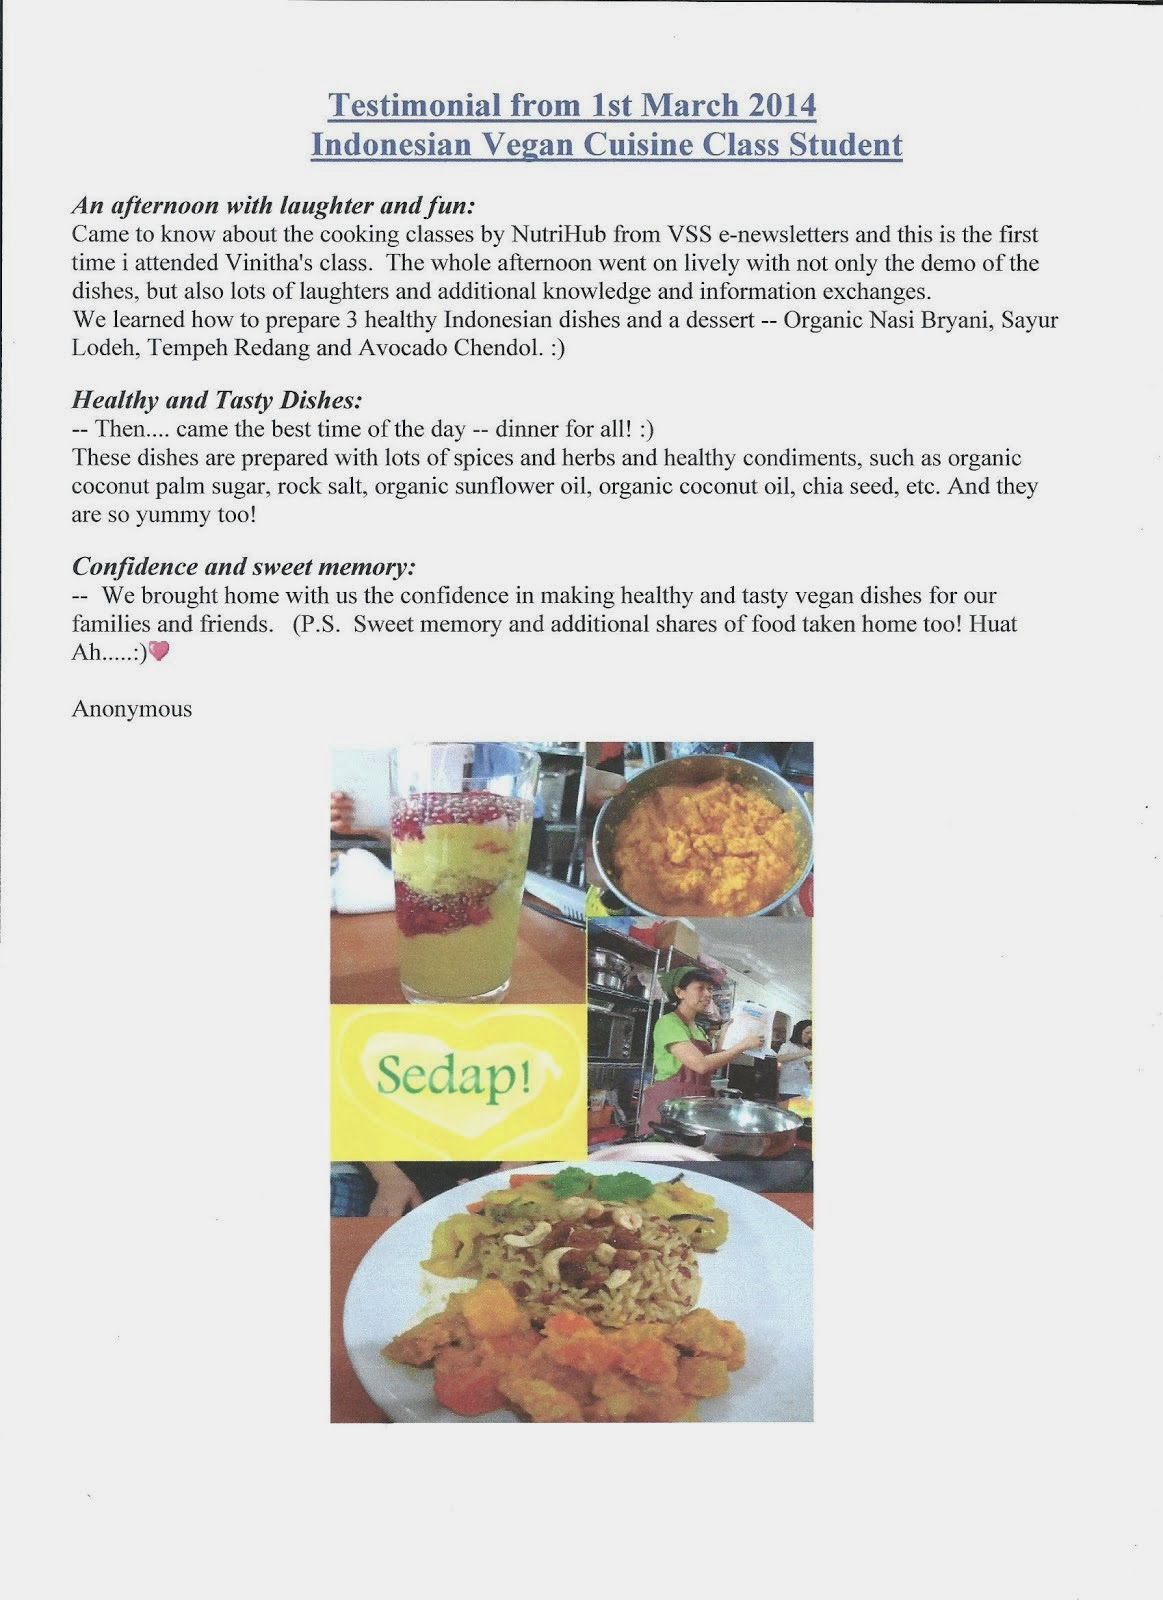 Sedap ! Photos and Testimonial from Indonesian Vegan Cuisine class Student